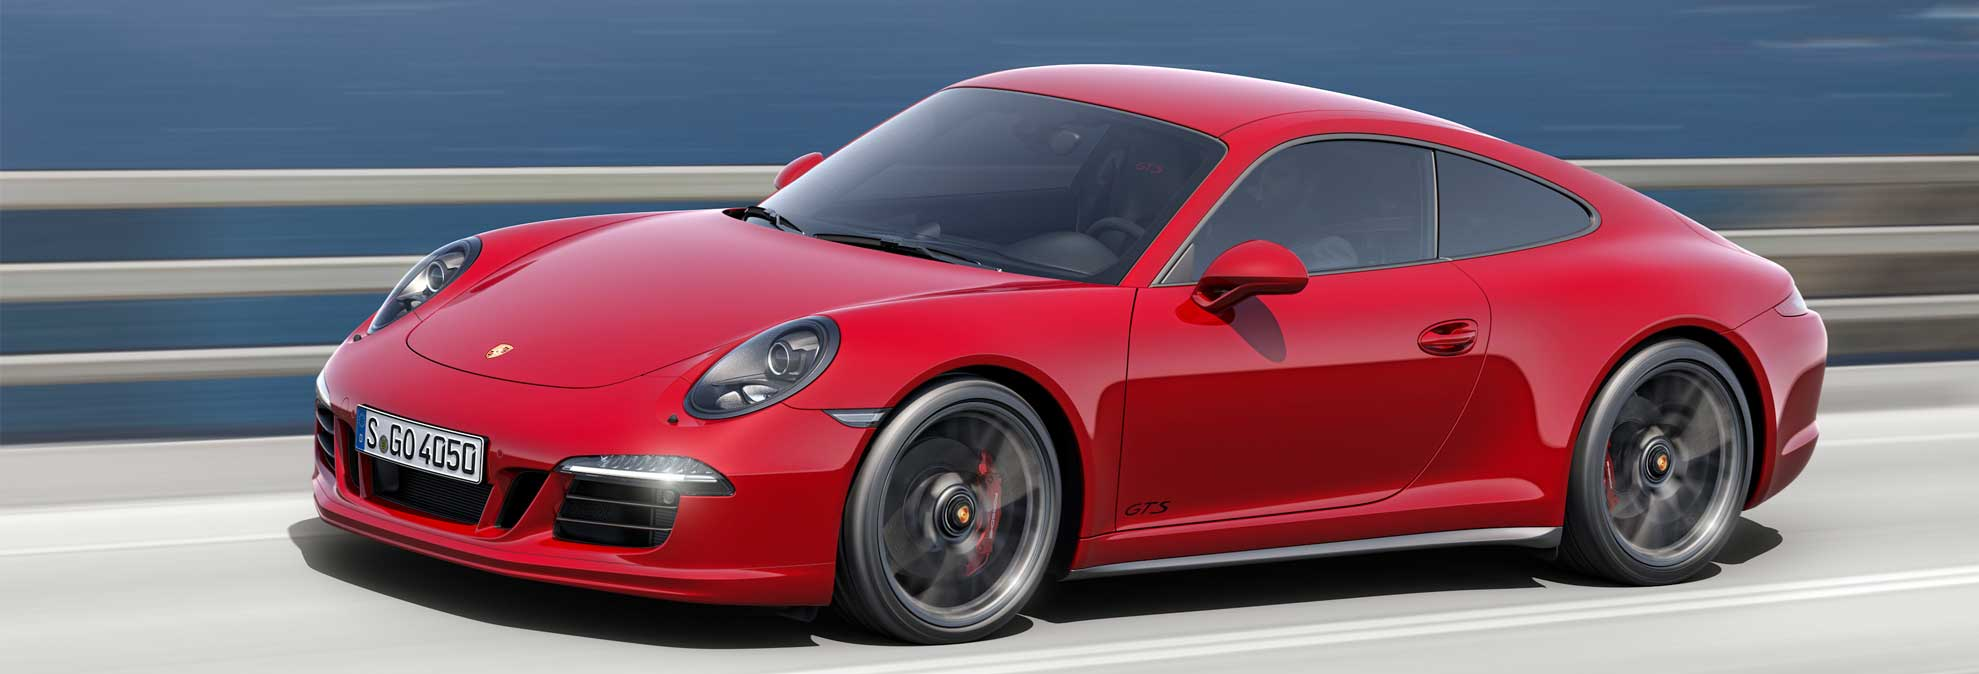 Best Sports Car Buying Guide Consumer Reports - Car signs on dashboardcar dashboard warning lights the complete guide carbuyer